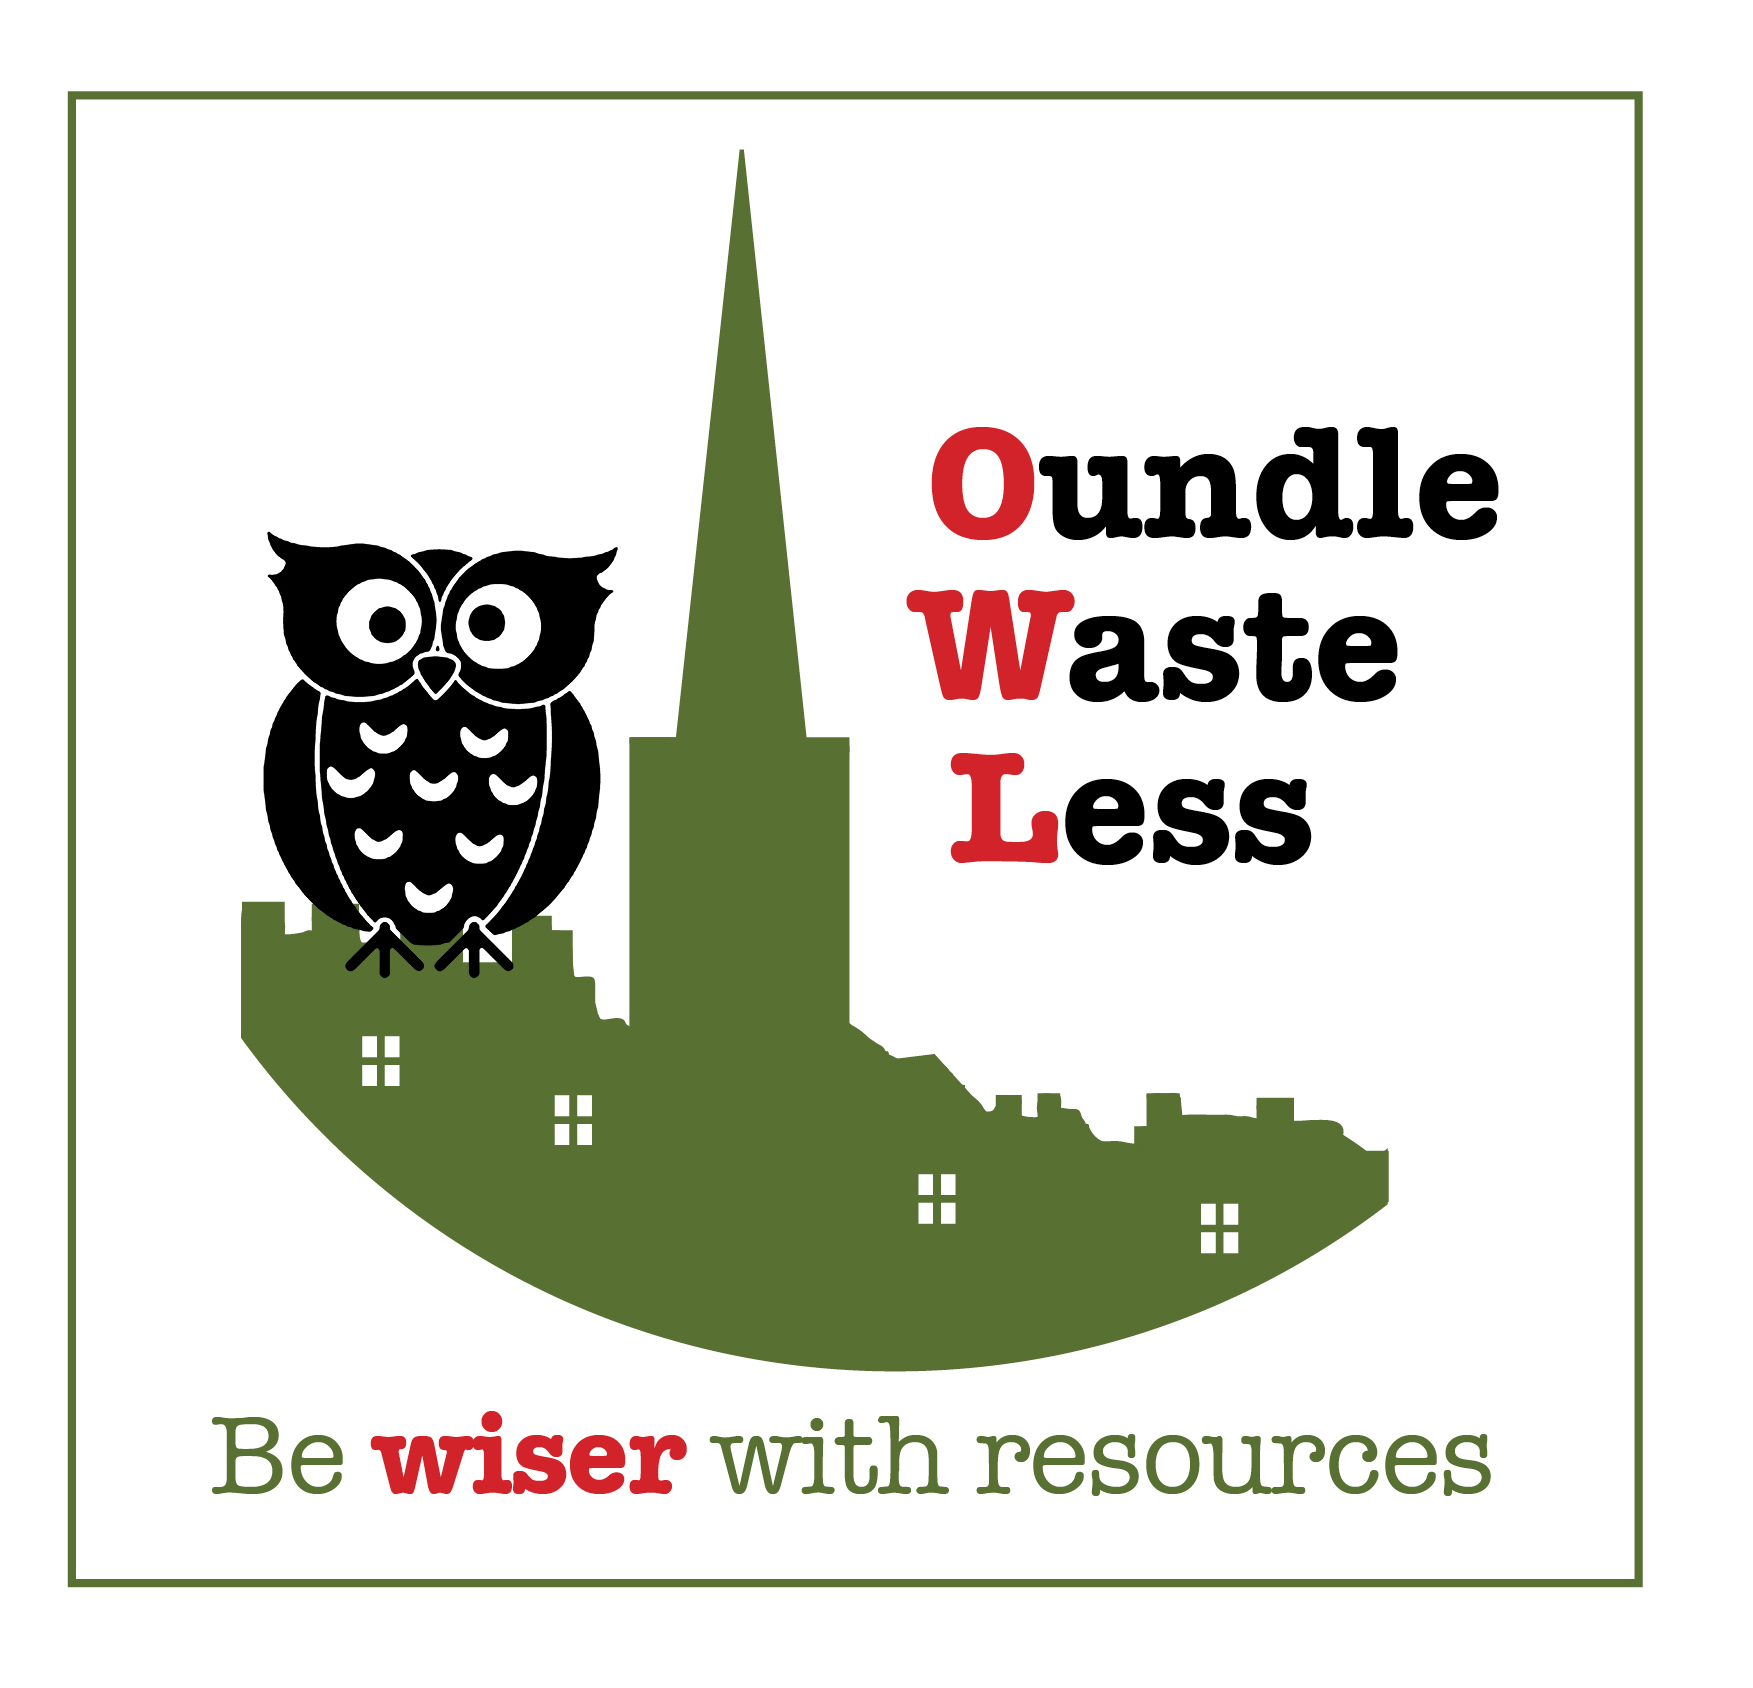 Oundle Waste Less